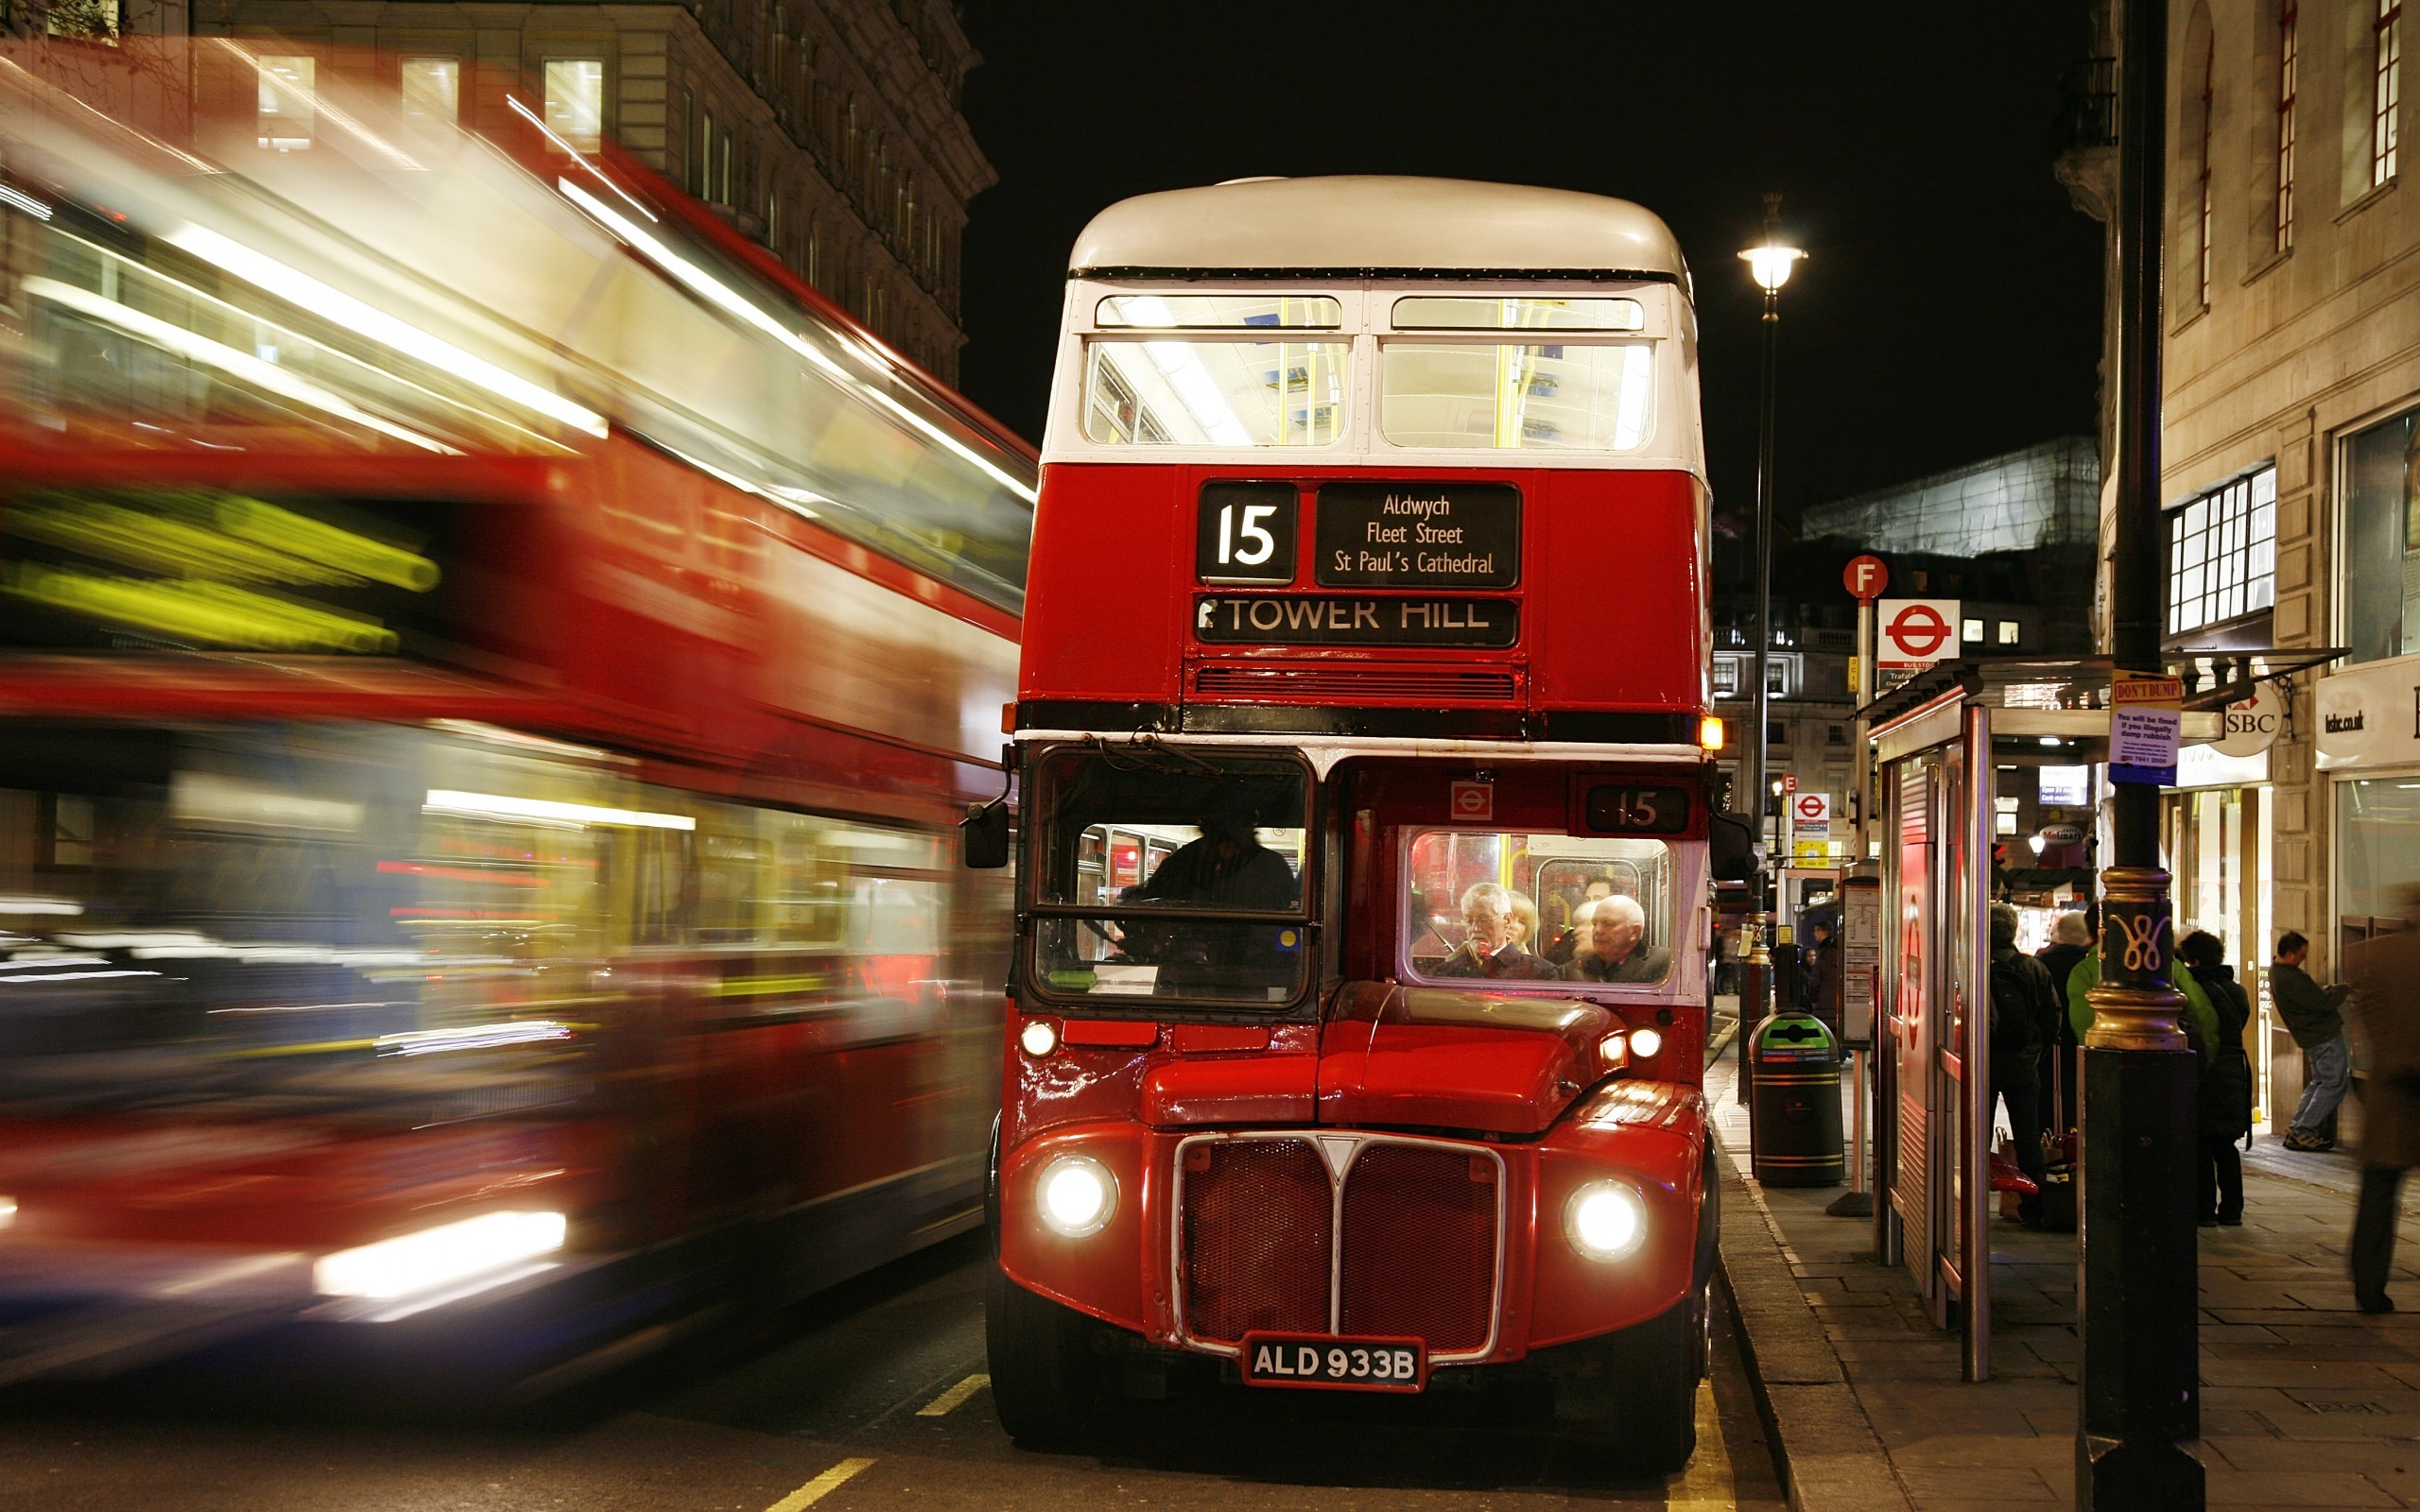 2560x1600 London england bus night lights people blur Passengers driver street road  lantern city wallpaper |  | 76560 | WallpaperUP